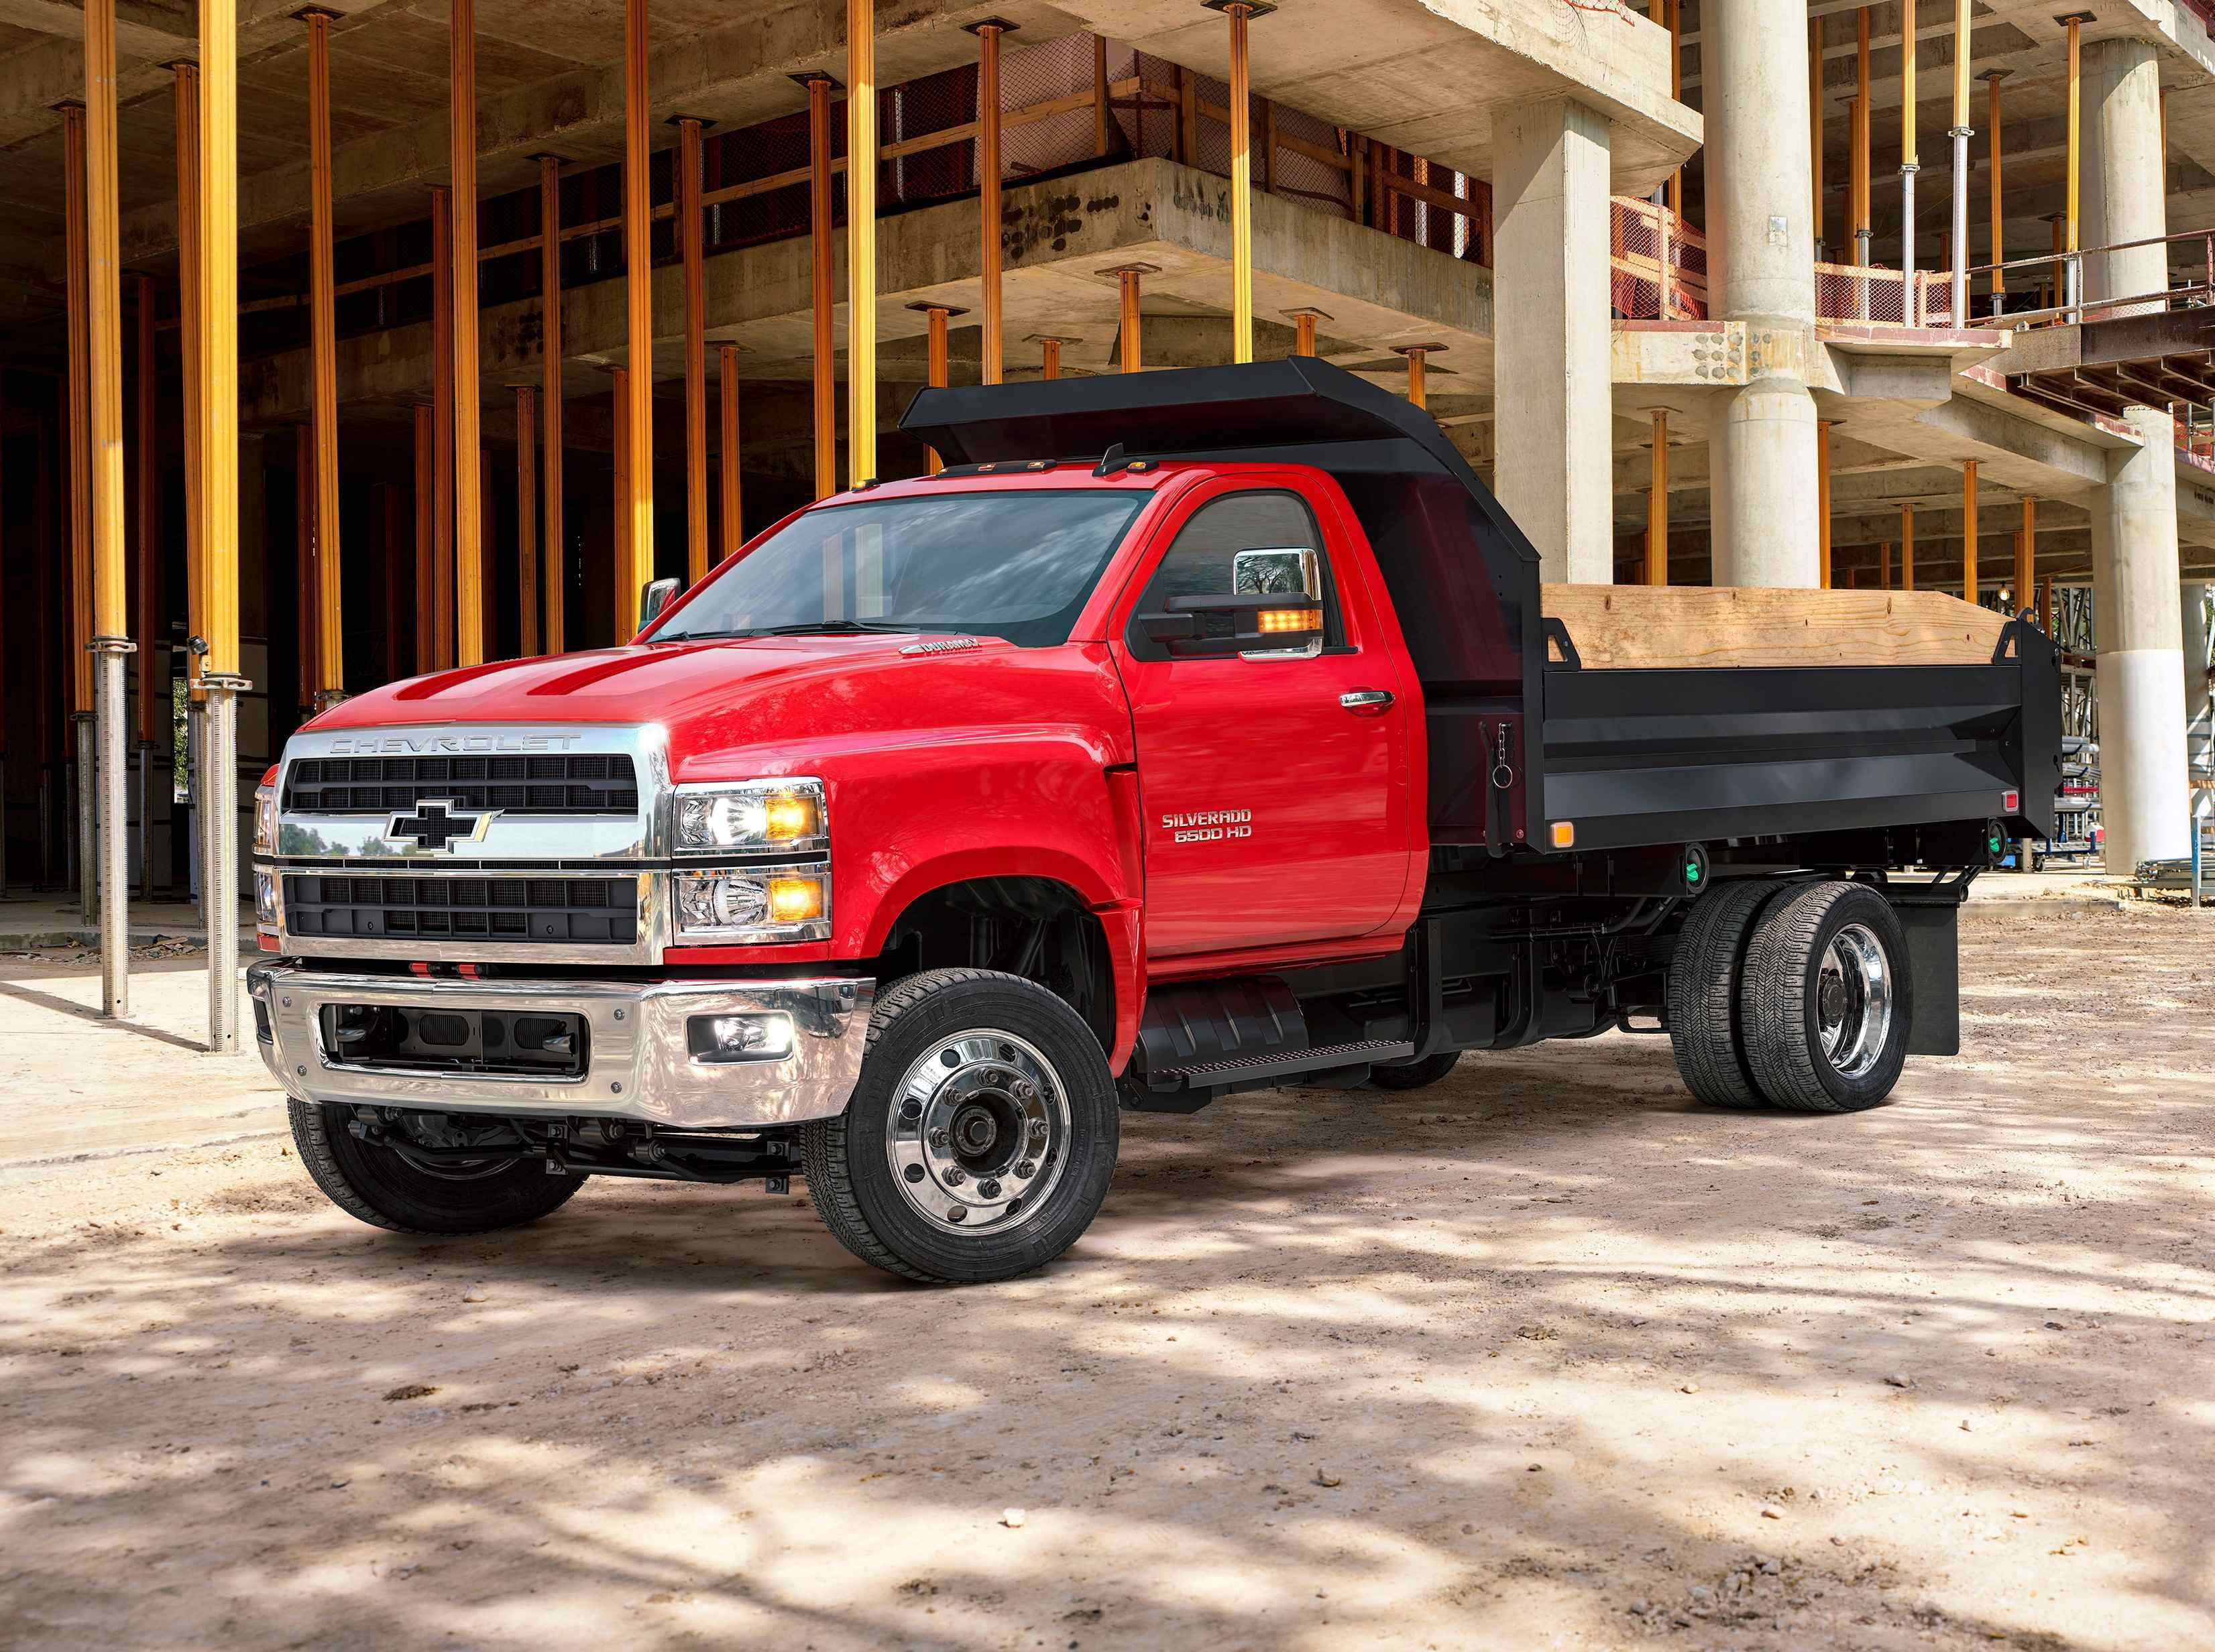 90 Great 2019 Chevrolet Hd Trucks Wallpaper by 2019 Chevrolet Hd Trucks